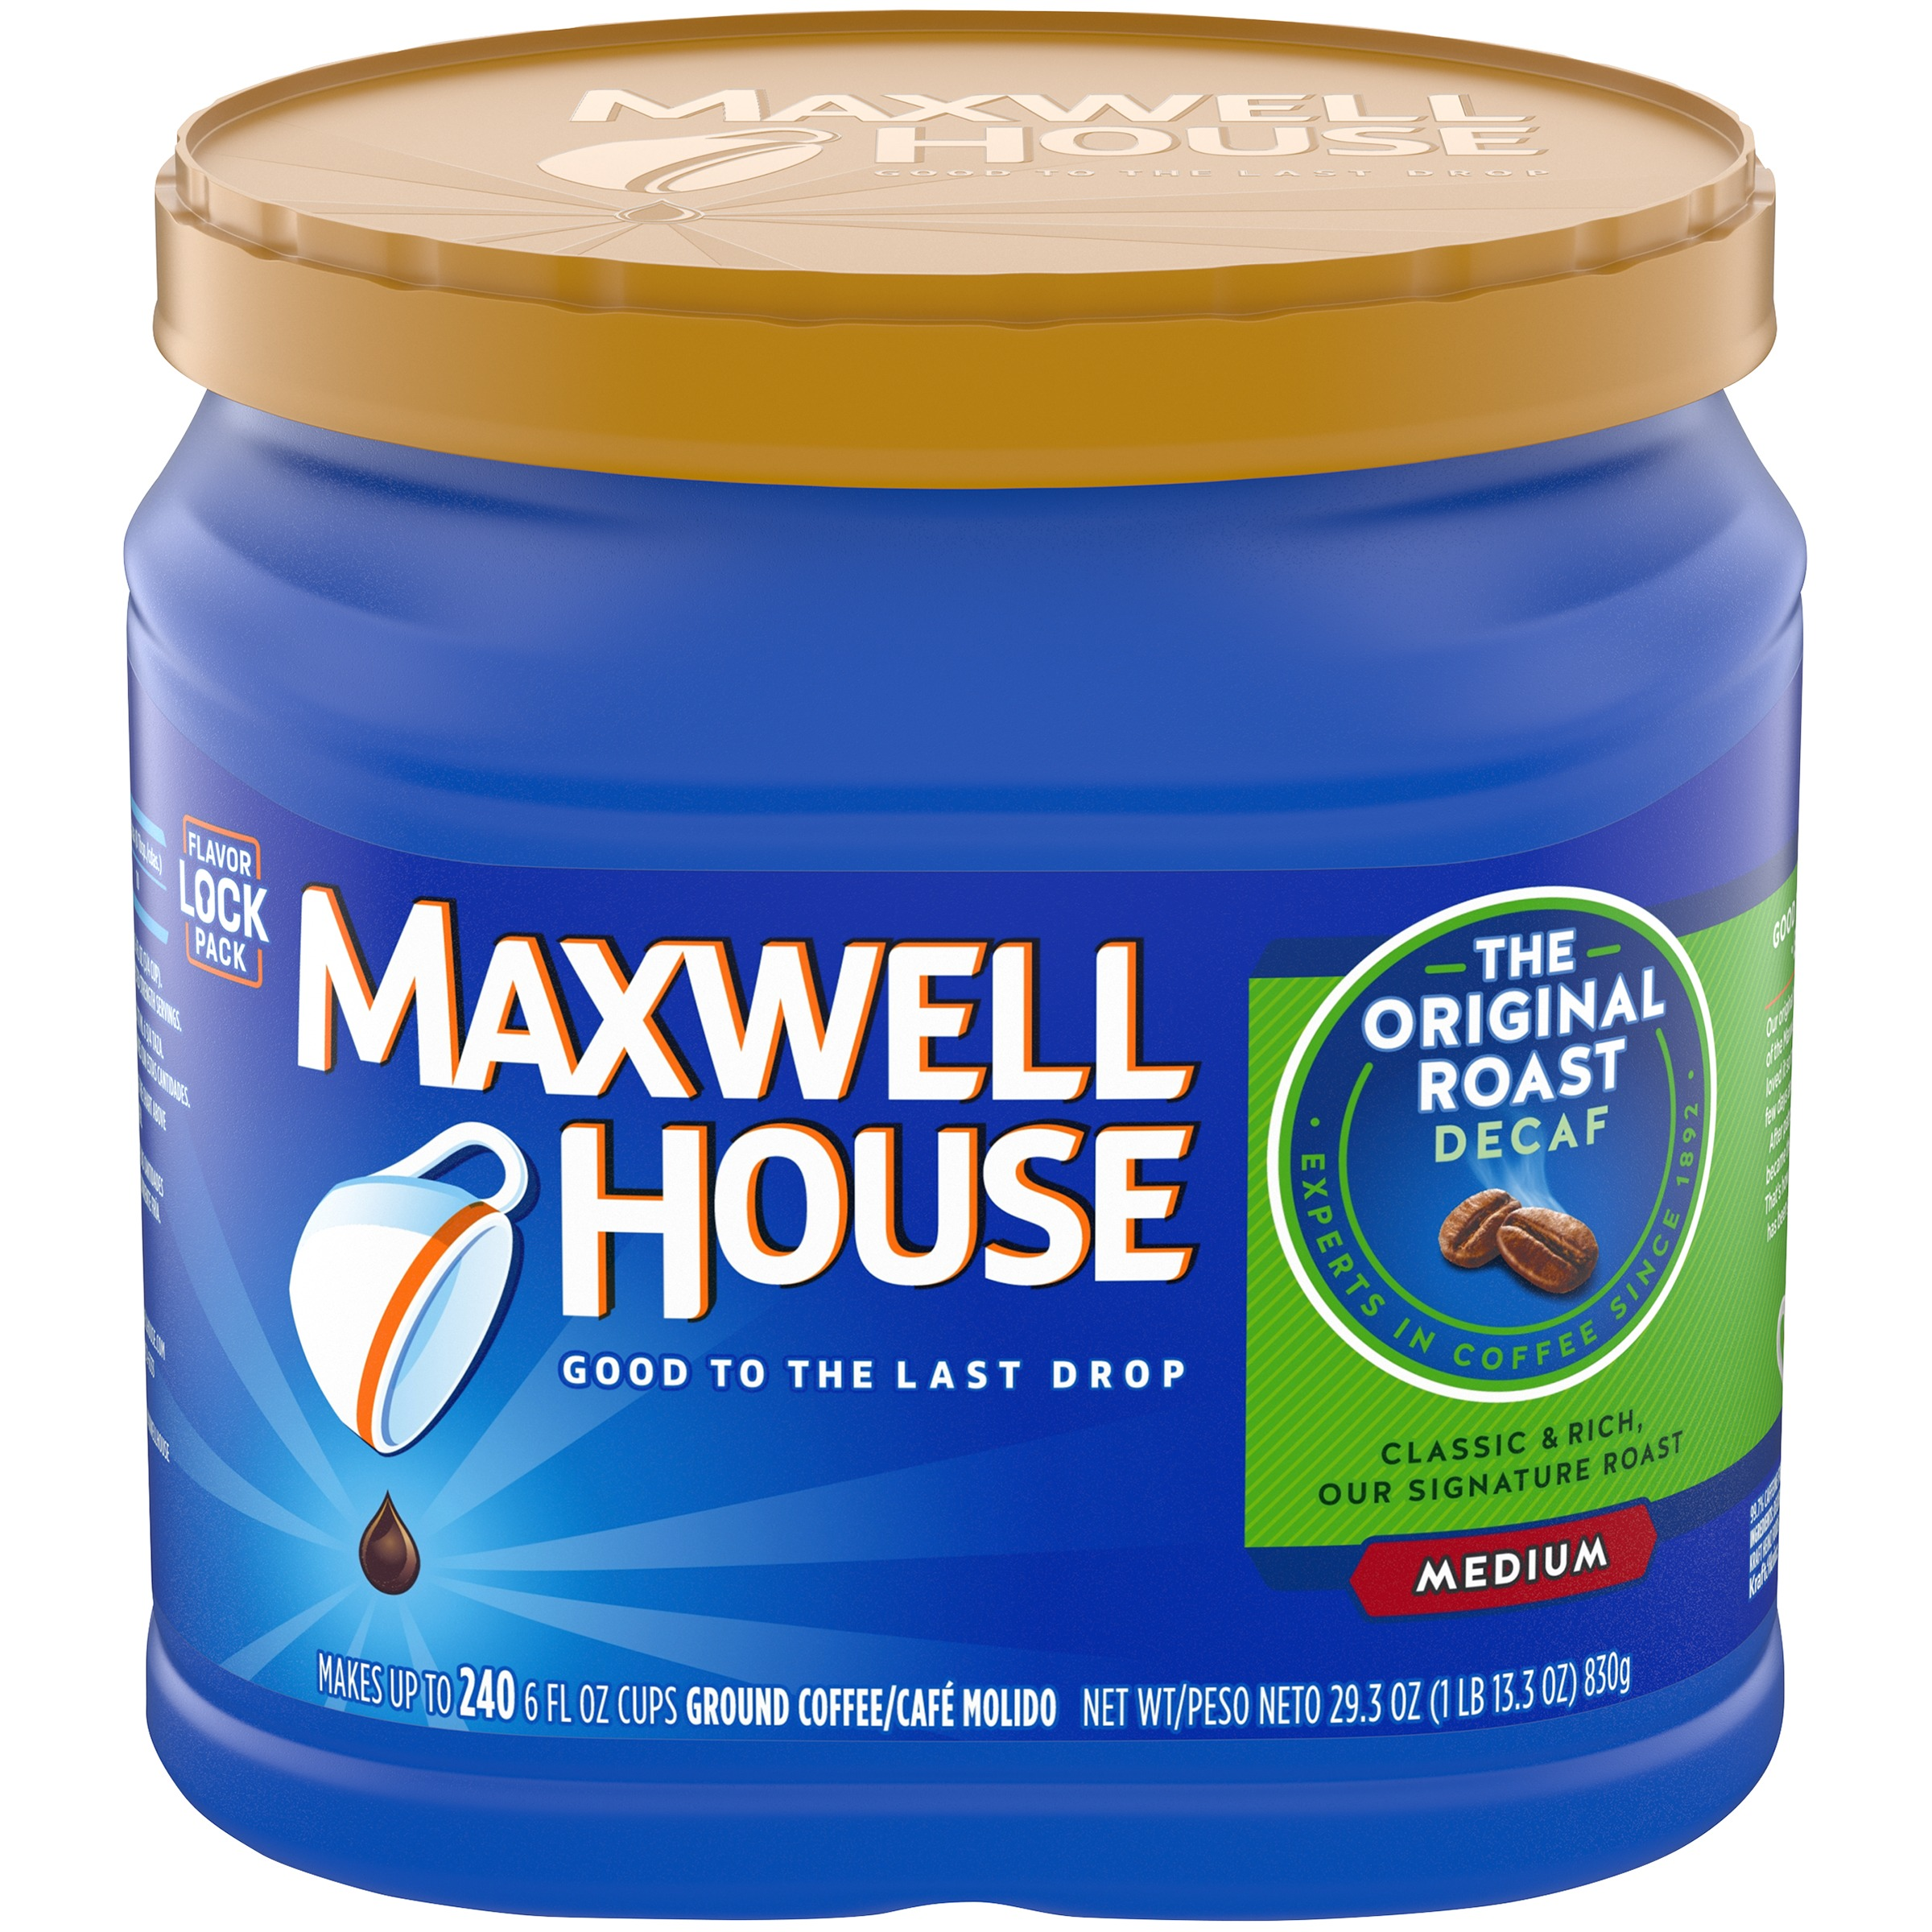 Maxwell House Decaf Original Roast Ground Coffee 29.3 oz. Tub